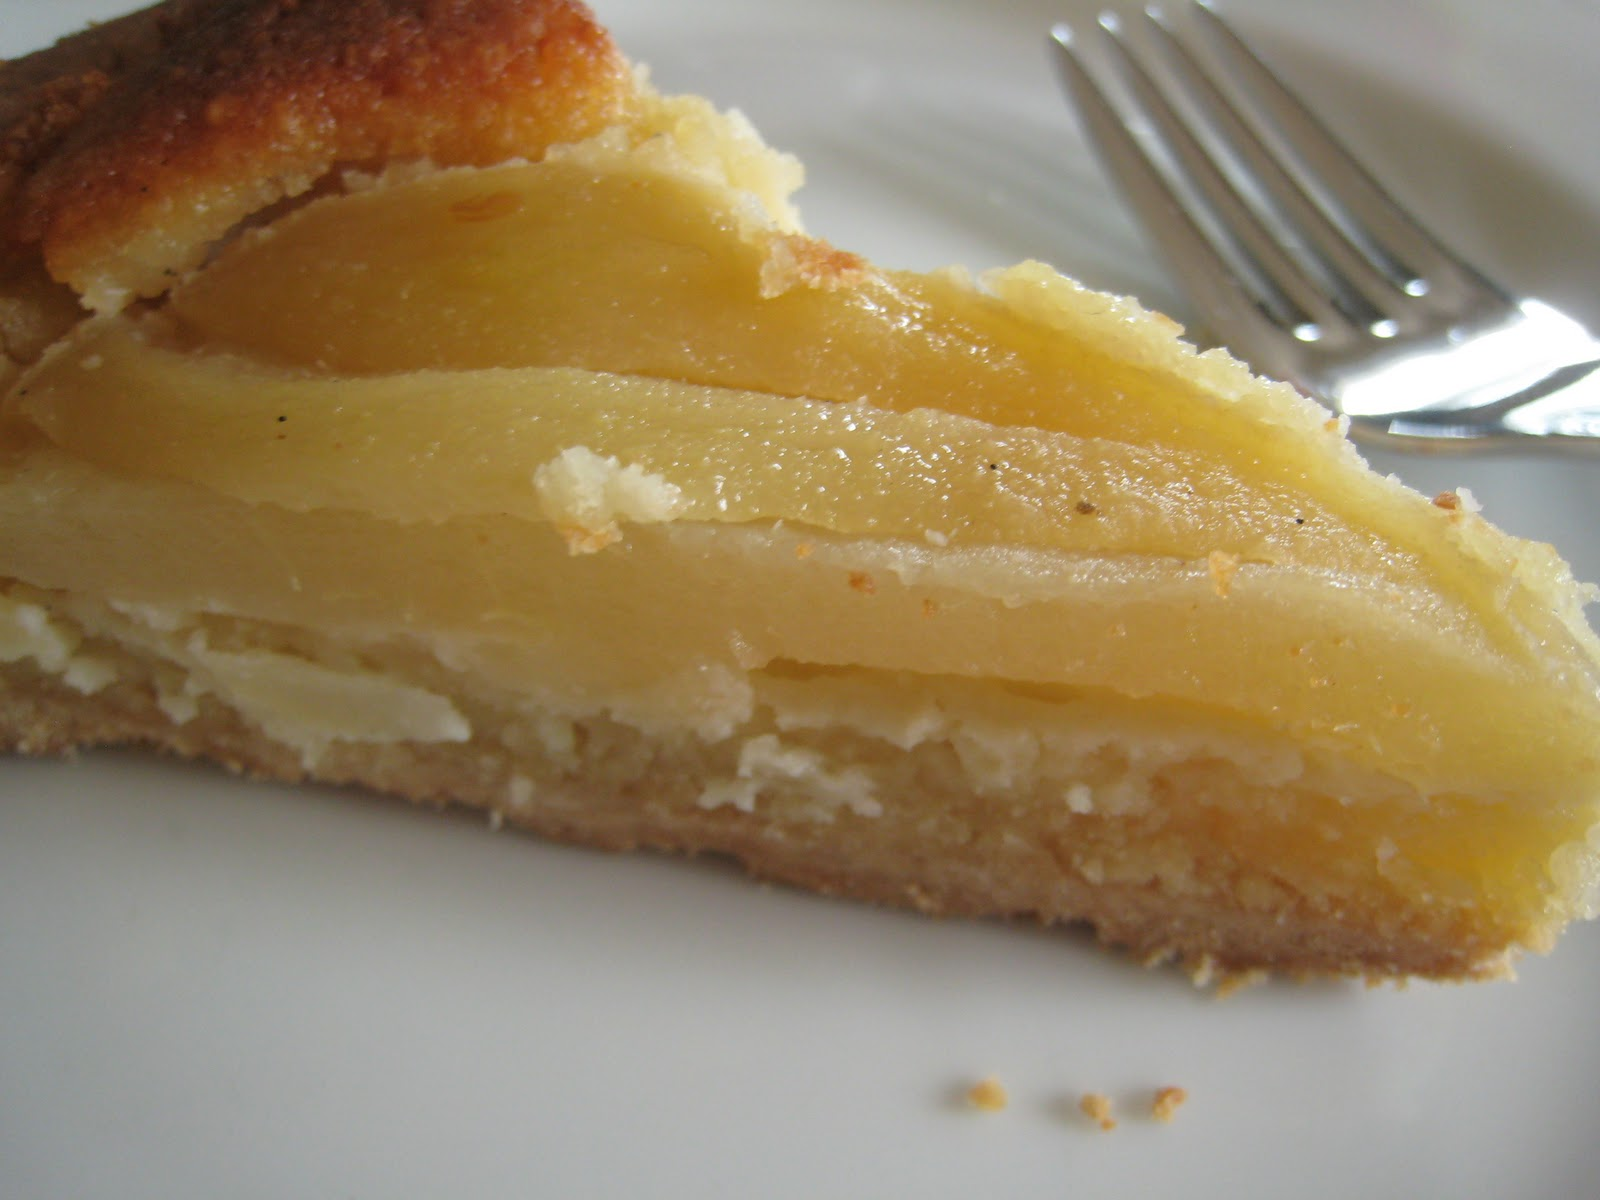 ... Berenbaum's pear tart with almond cream from The Pie and Pastry Bible